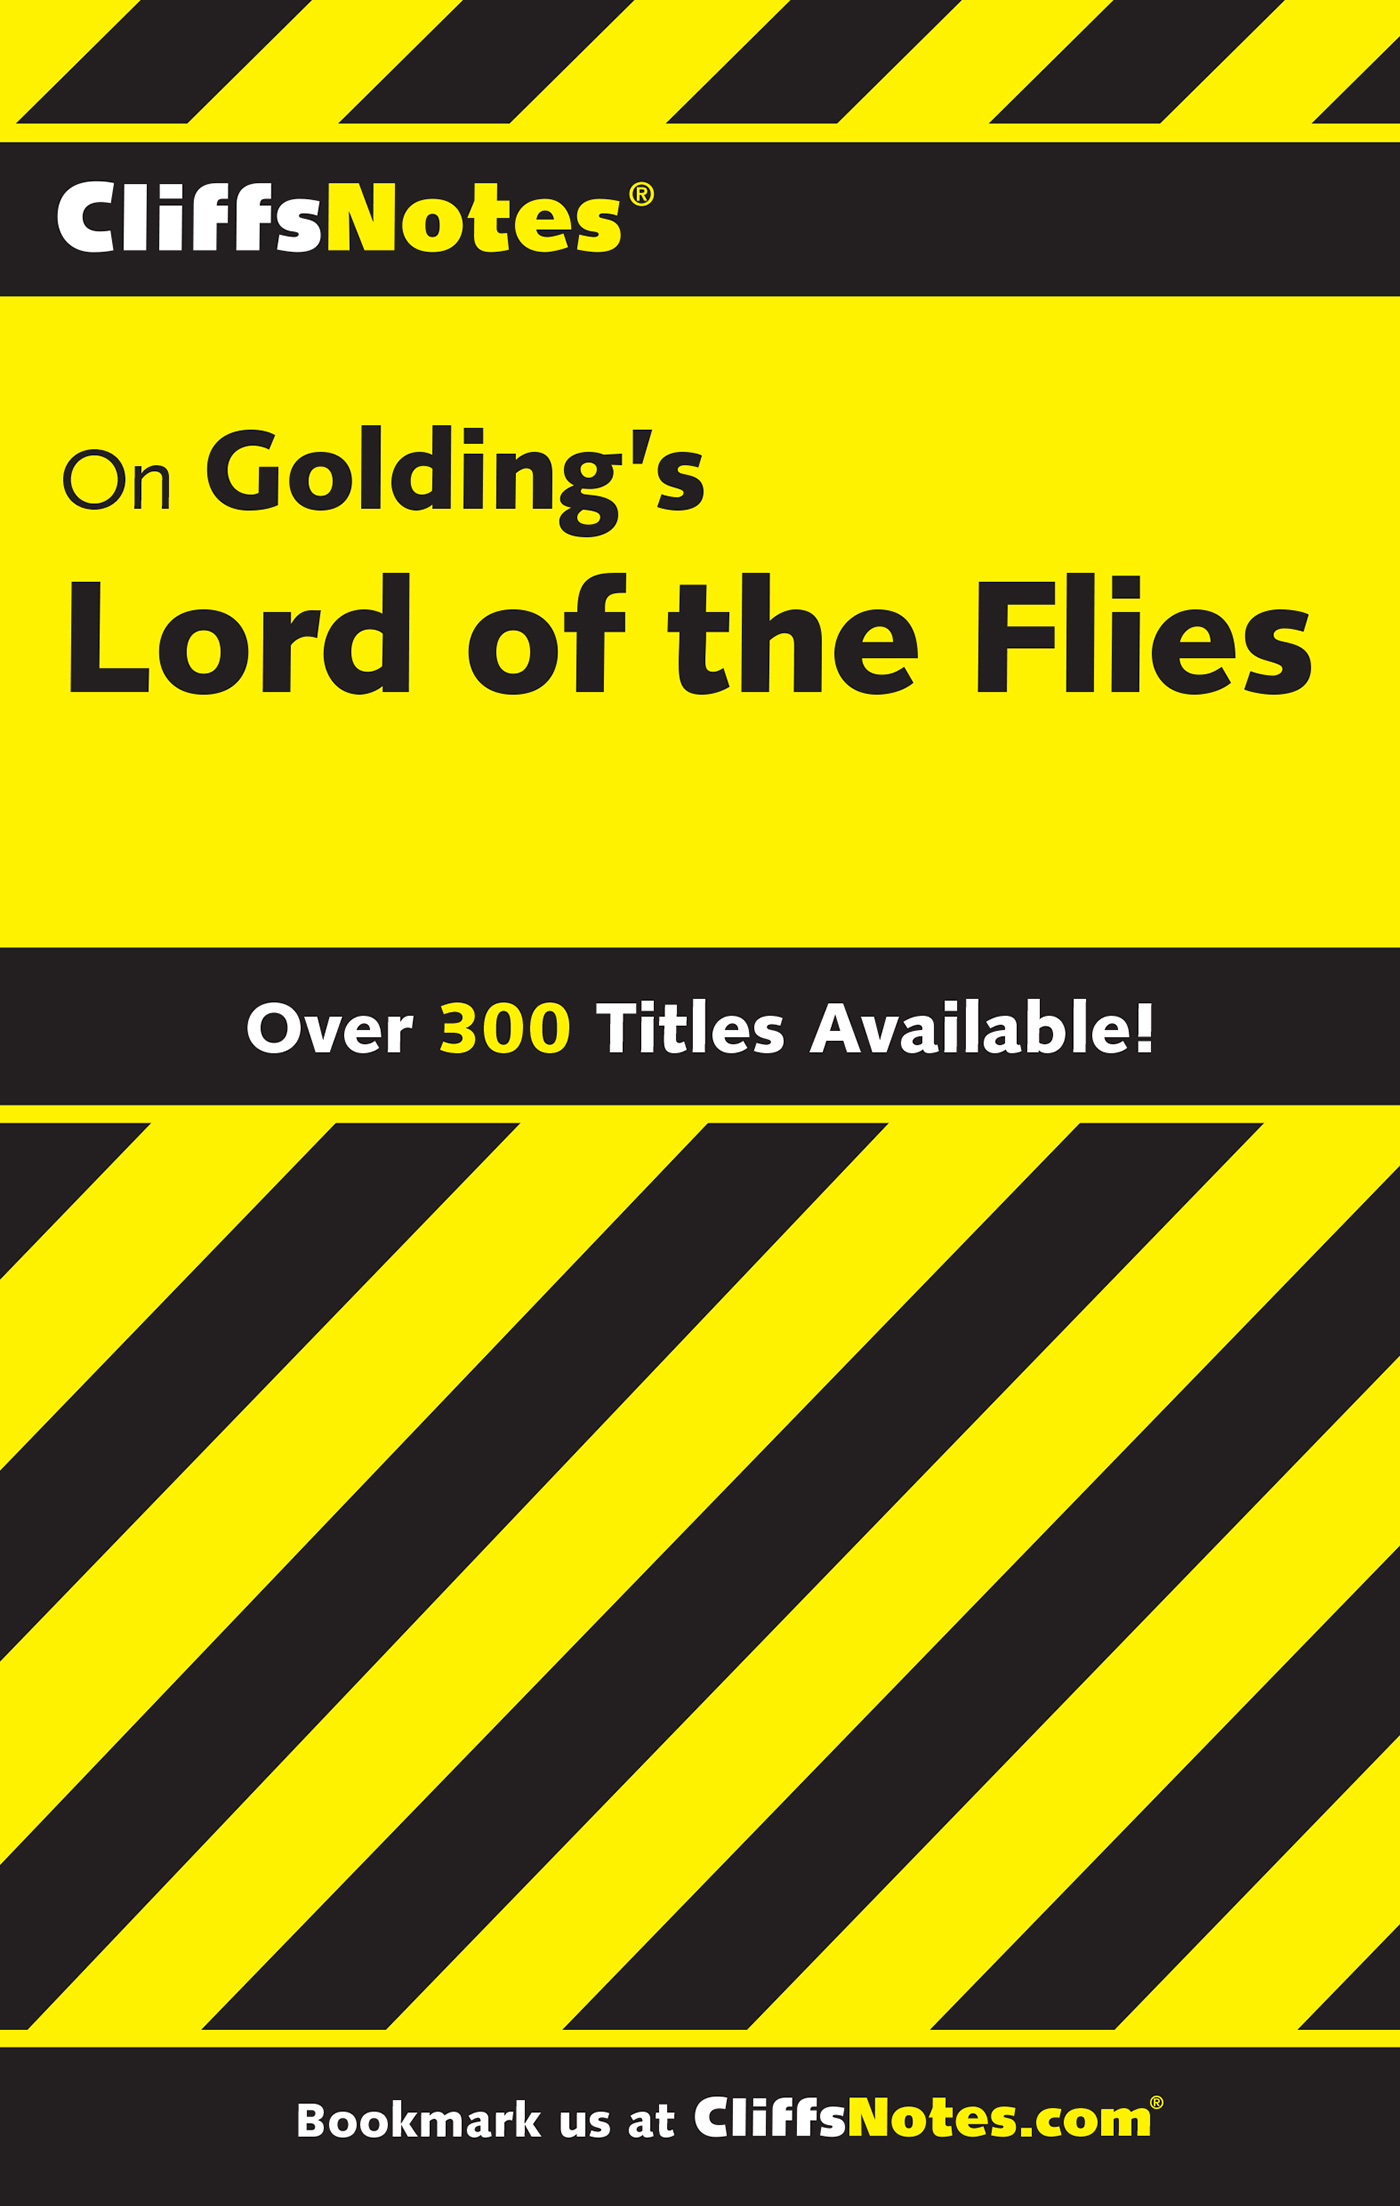 CliffsNotes on Golding's Lord of the Flies-9780764585975